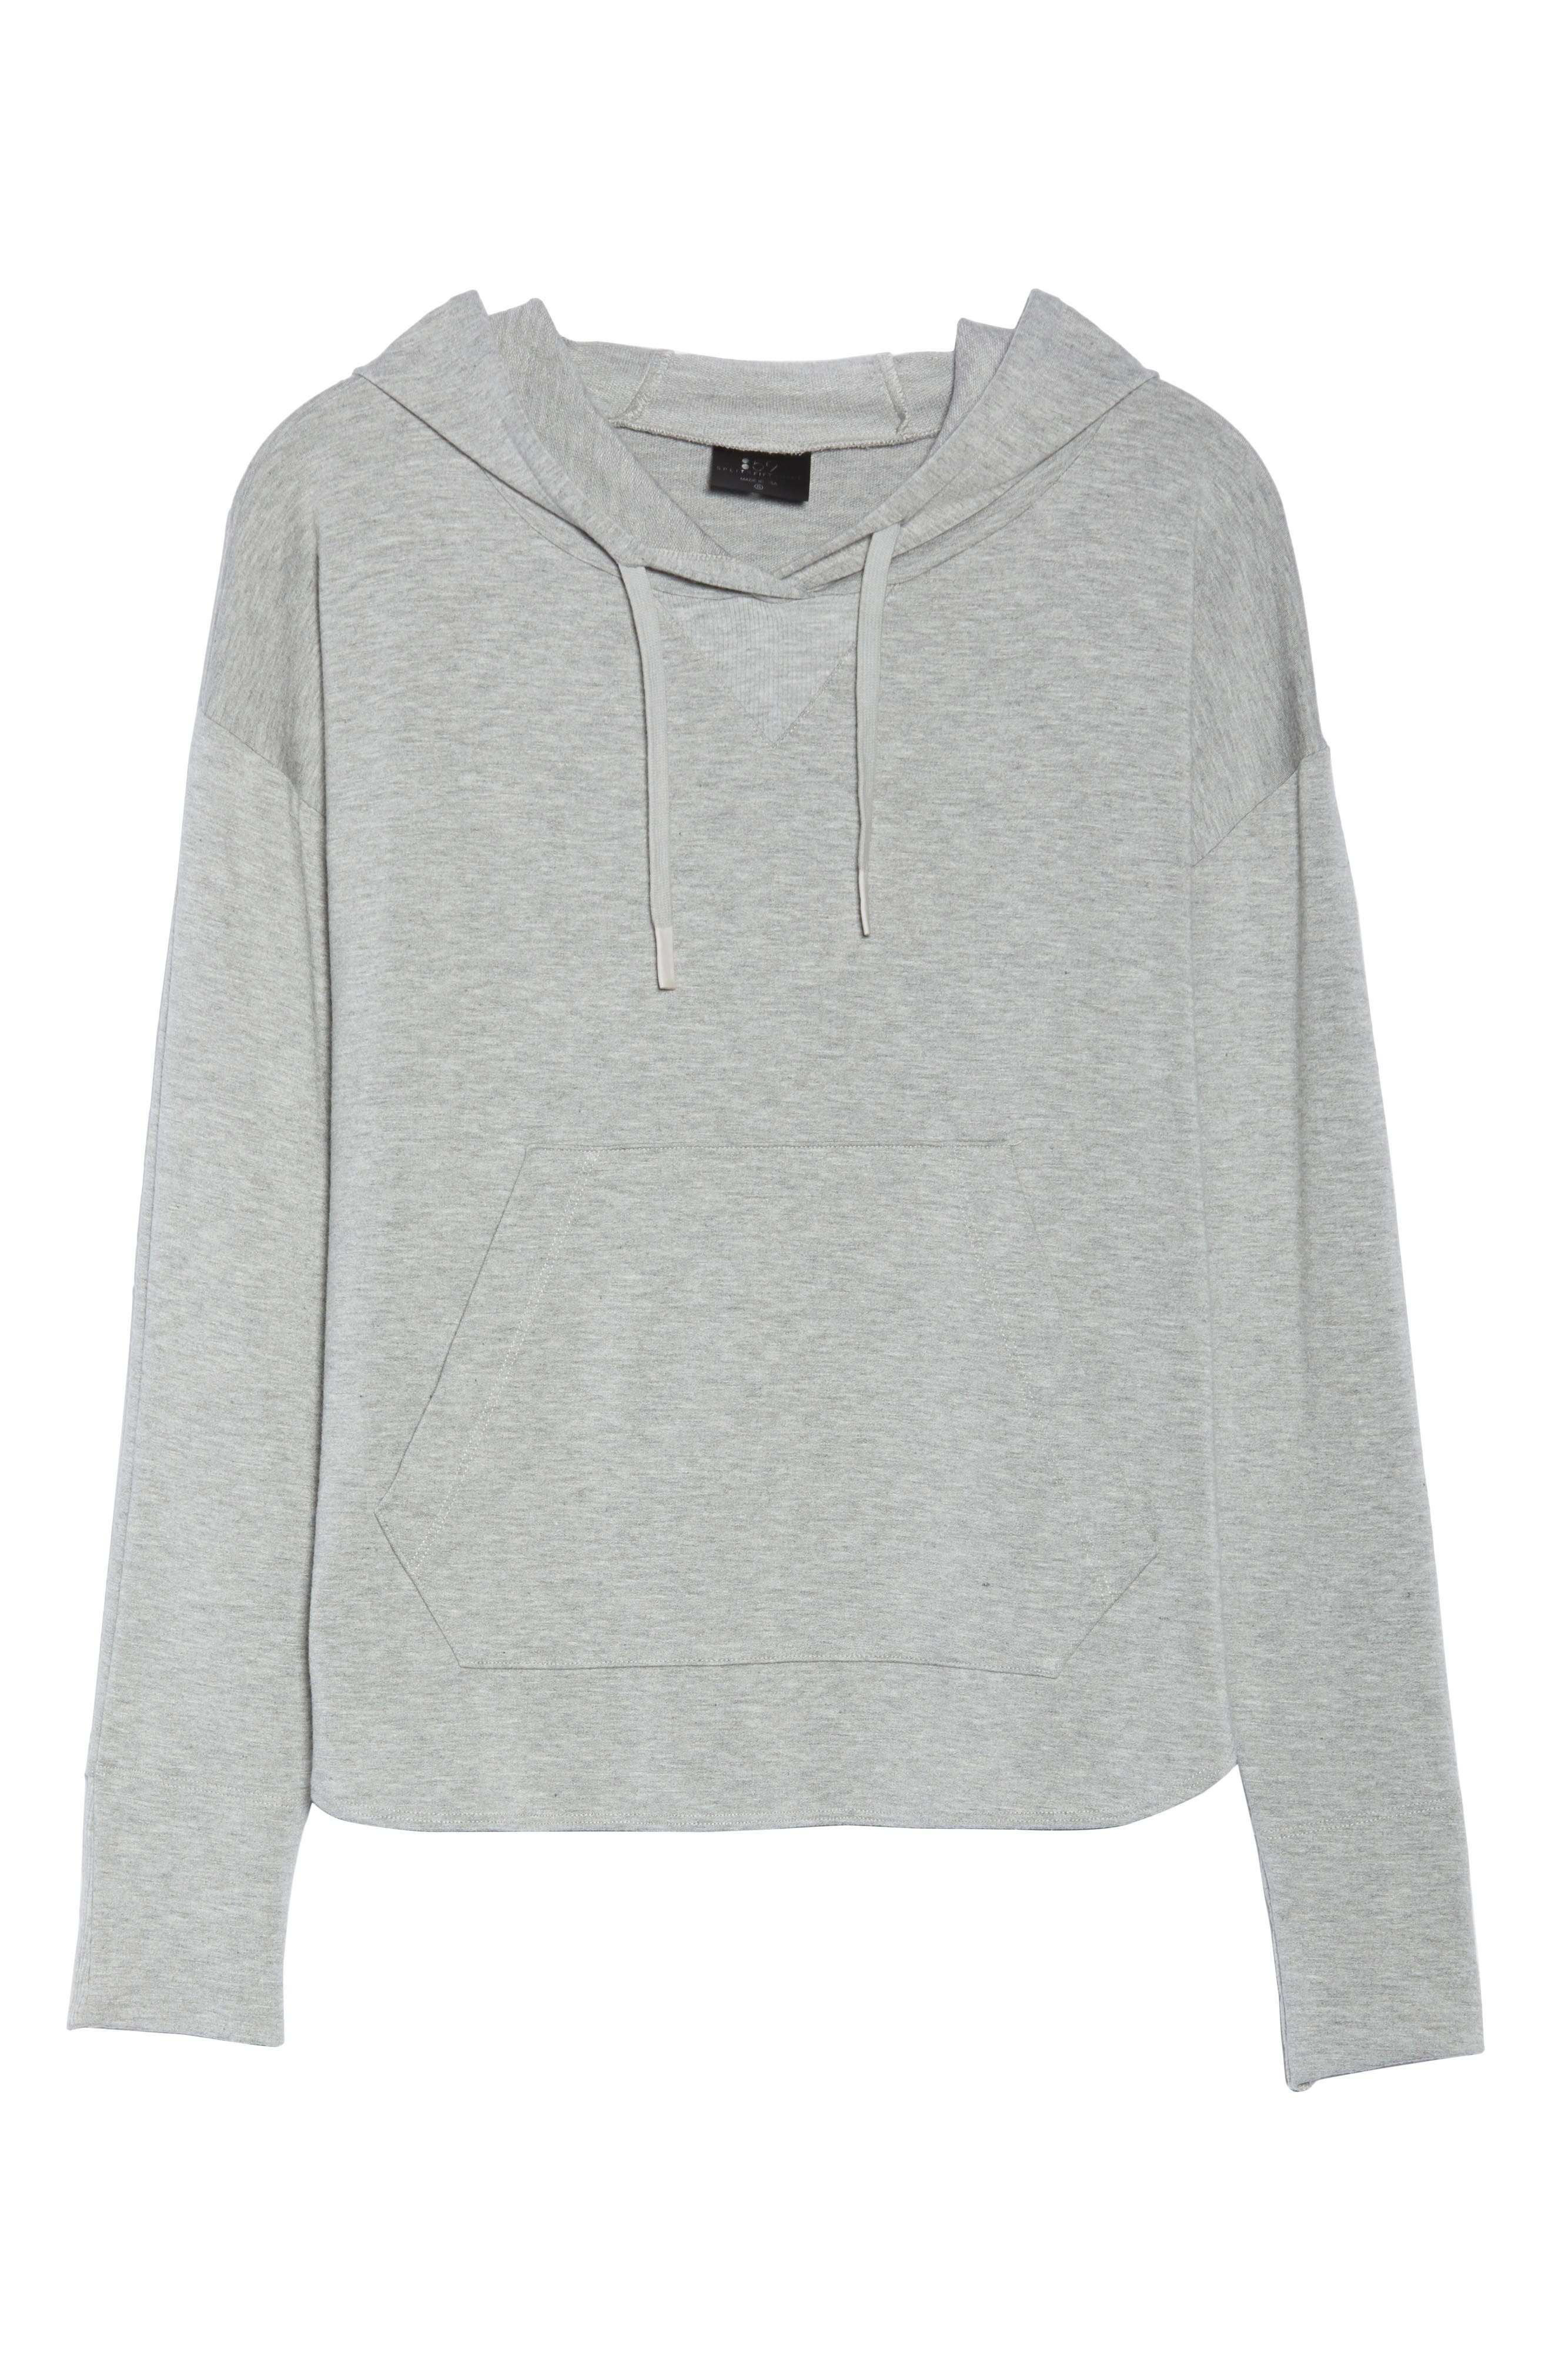 Pacific Hoodie,                             Alternate thumbnail 7, color,                             021